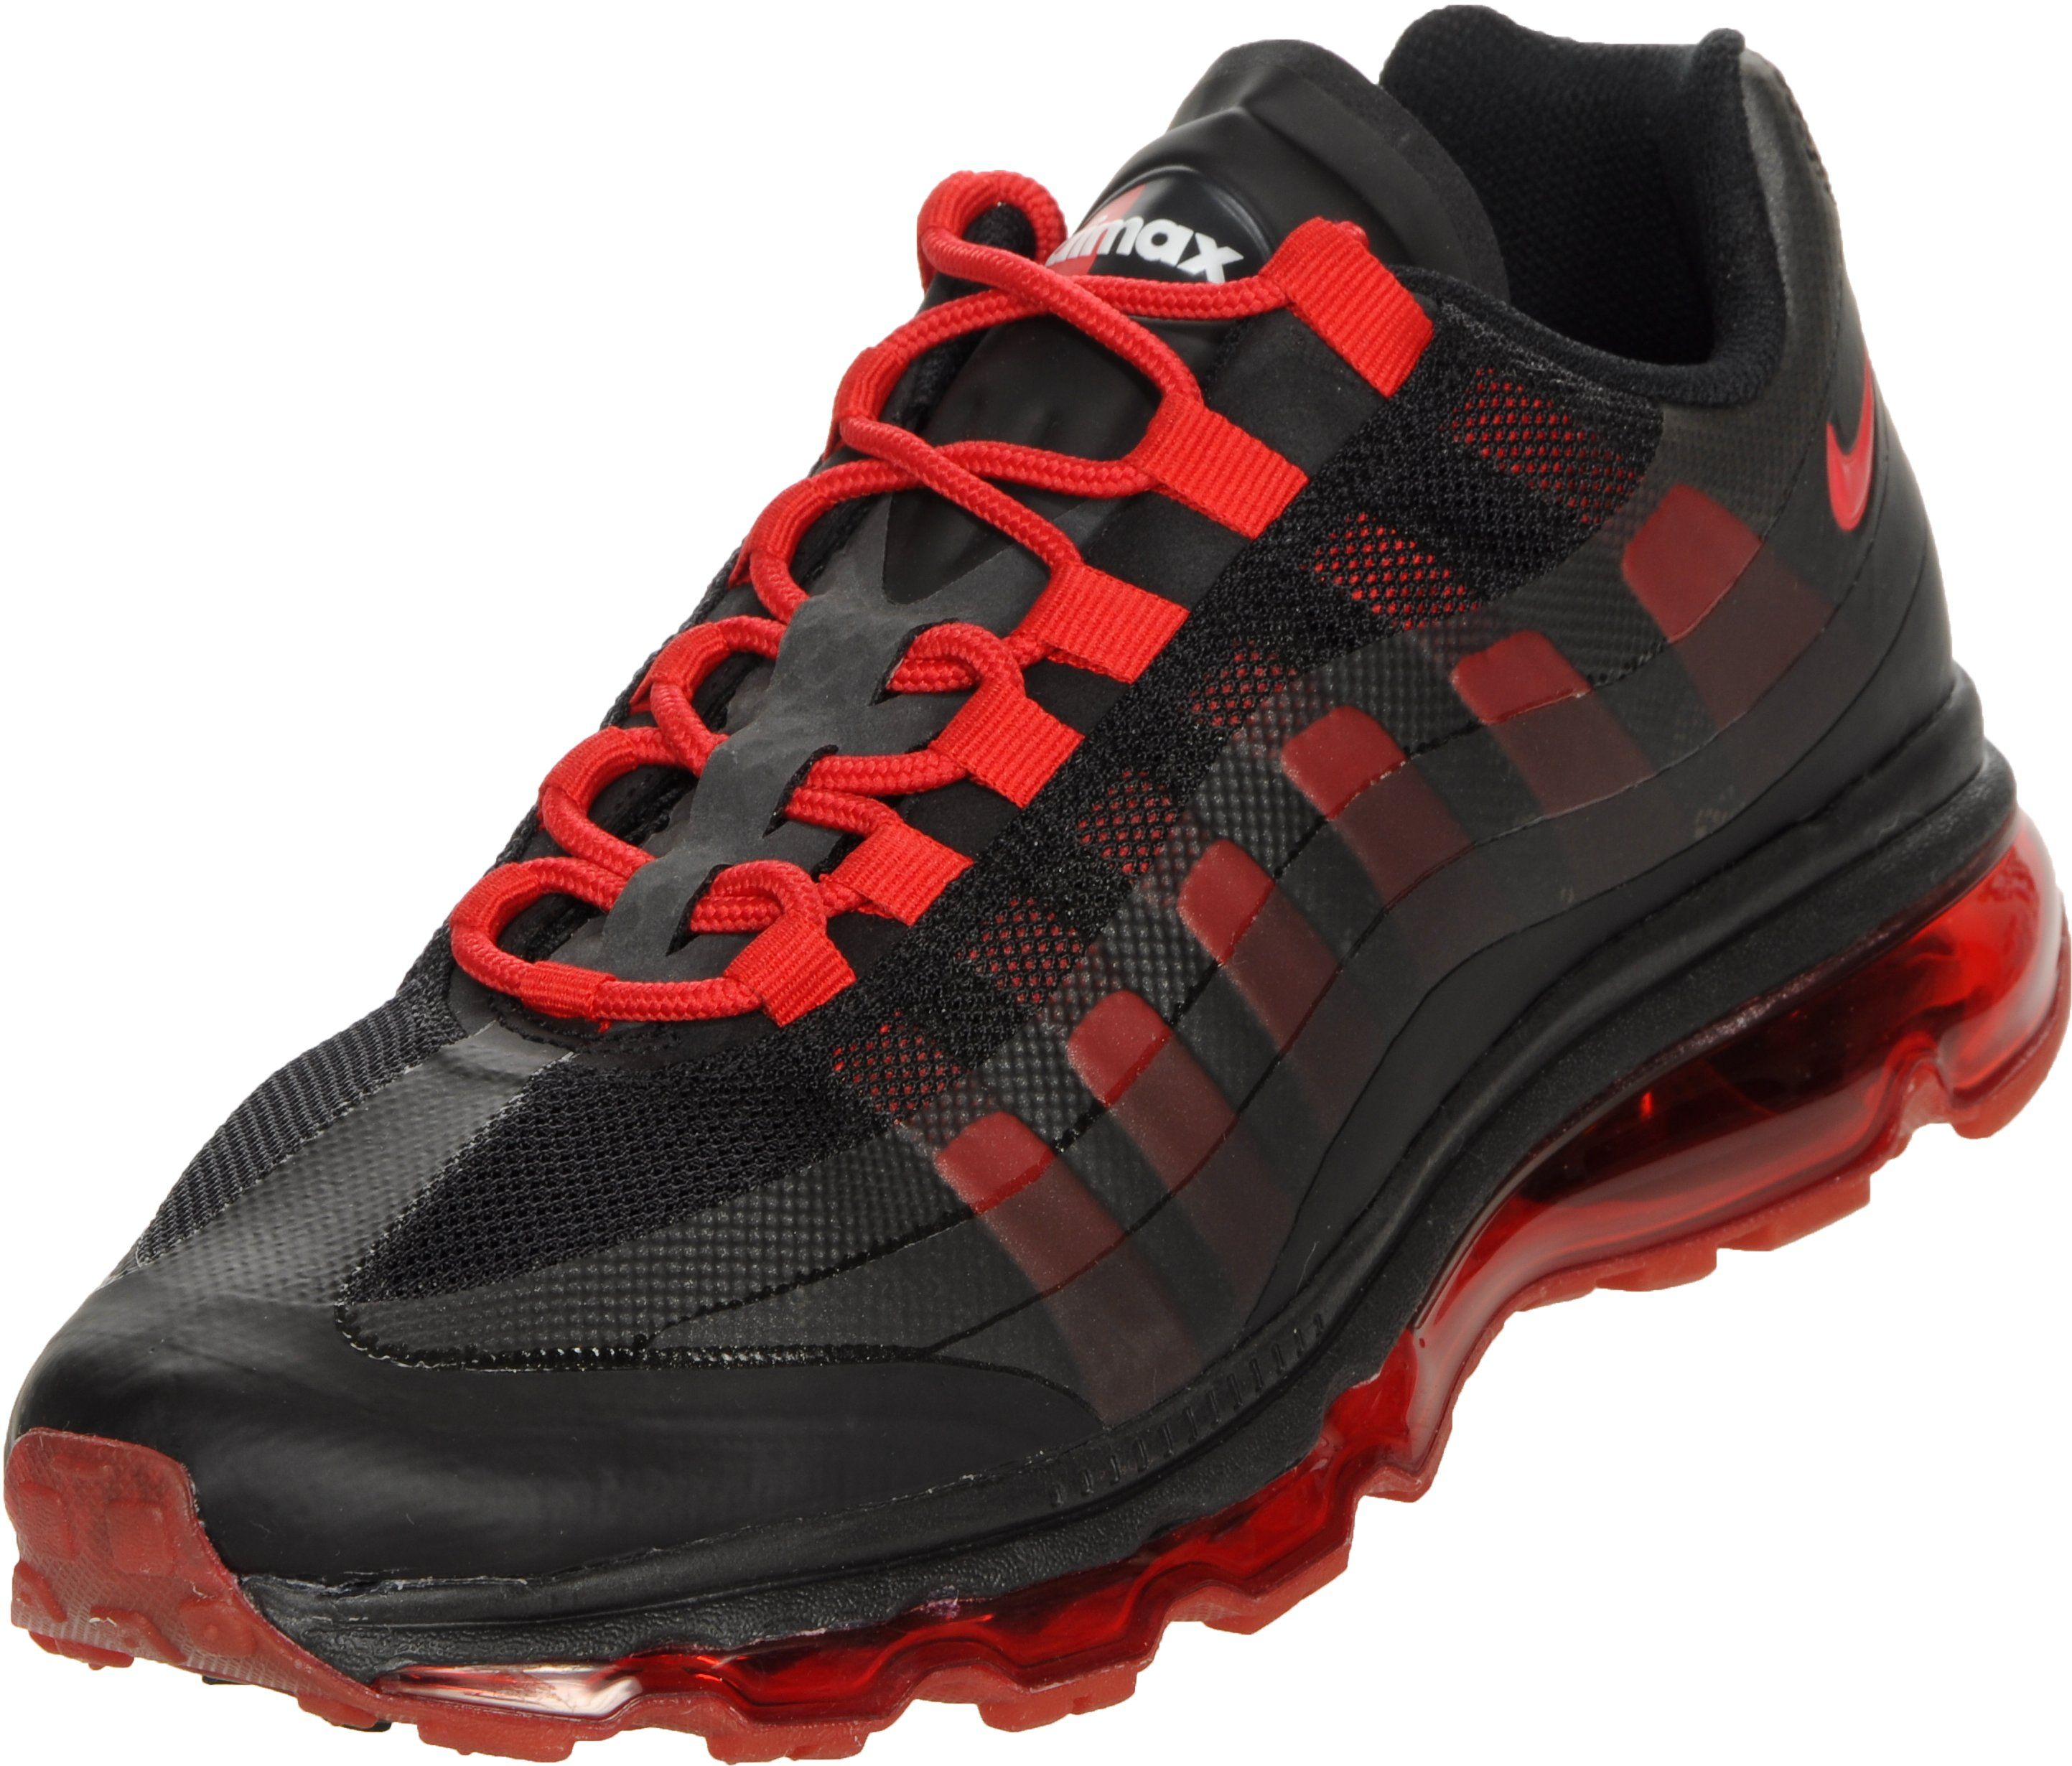 new arrival c4119 199fa Nike Air Max 95 360 Men s Running Shoes  FinishLine  169.99